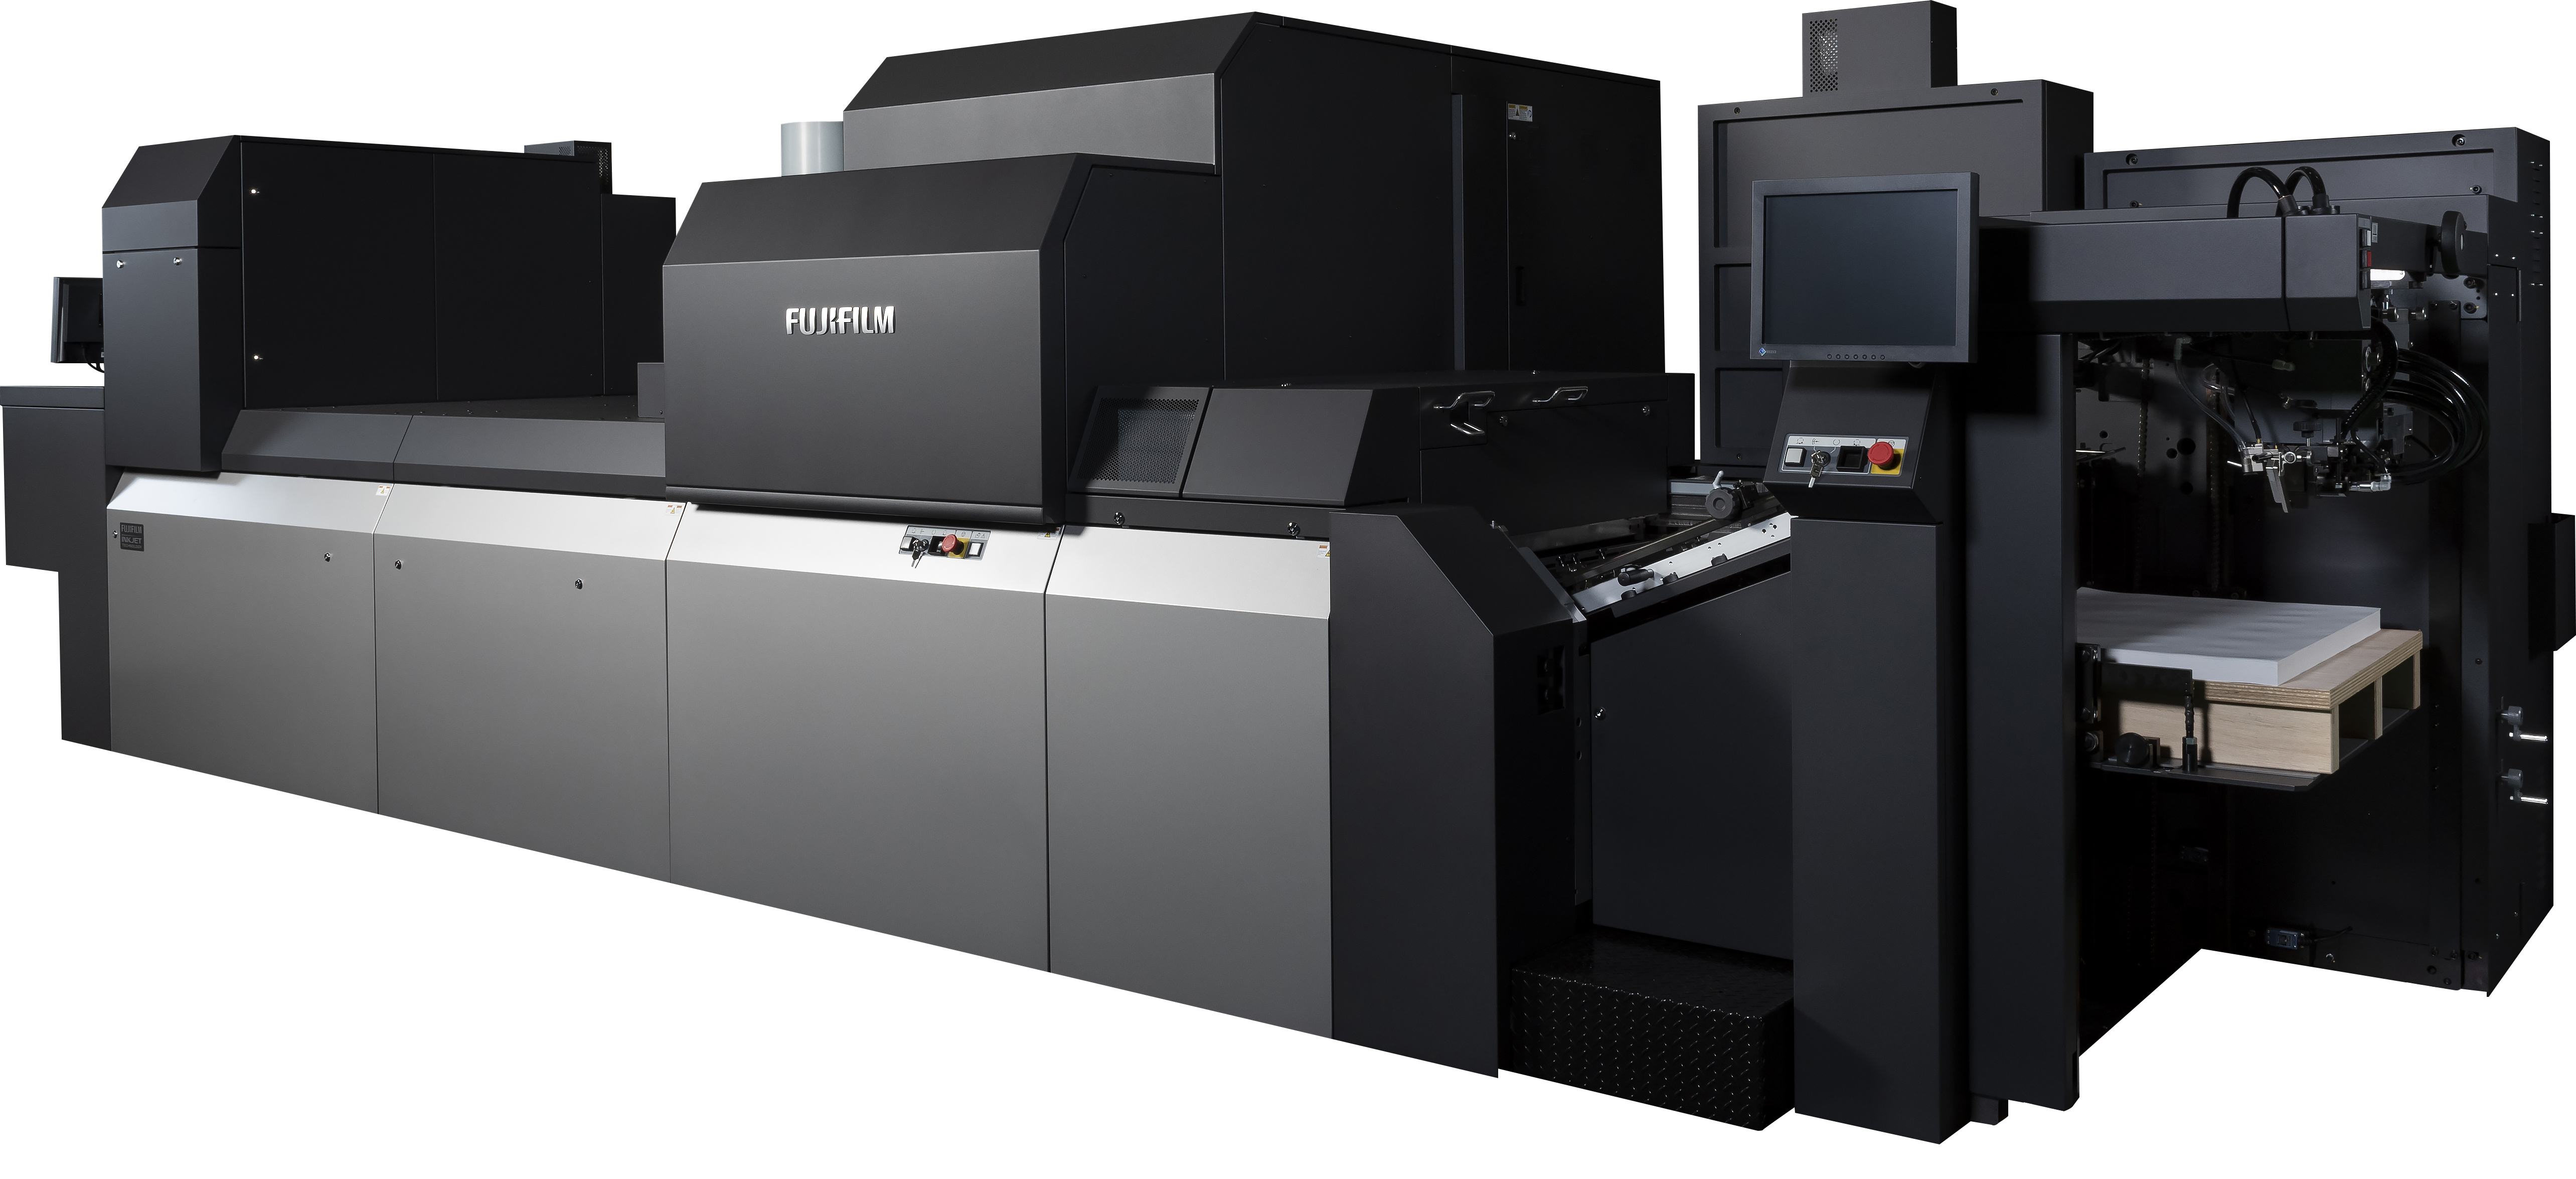 Fujifilm's J Press 750S Achieves ISO/PAS 15339 System Certification and Master Elite Status from Idealliance